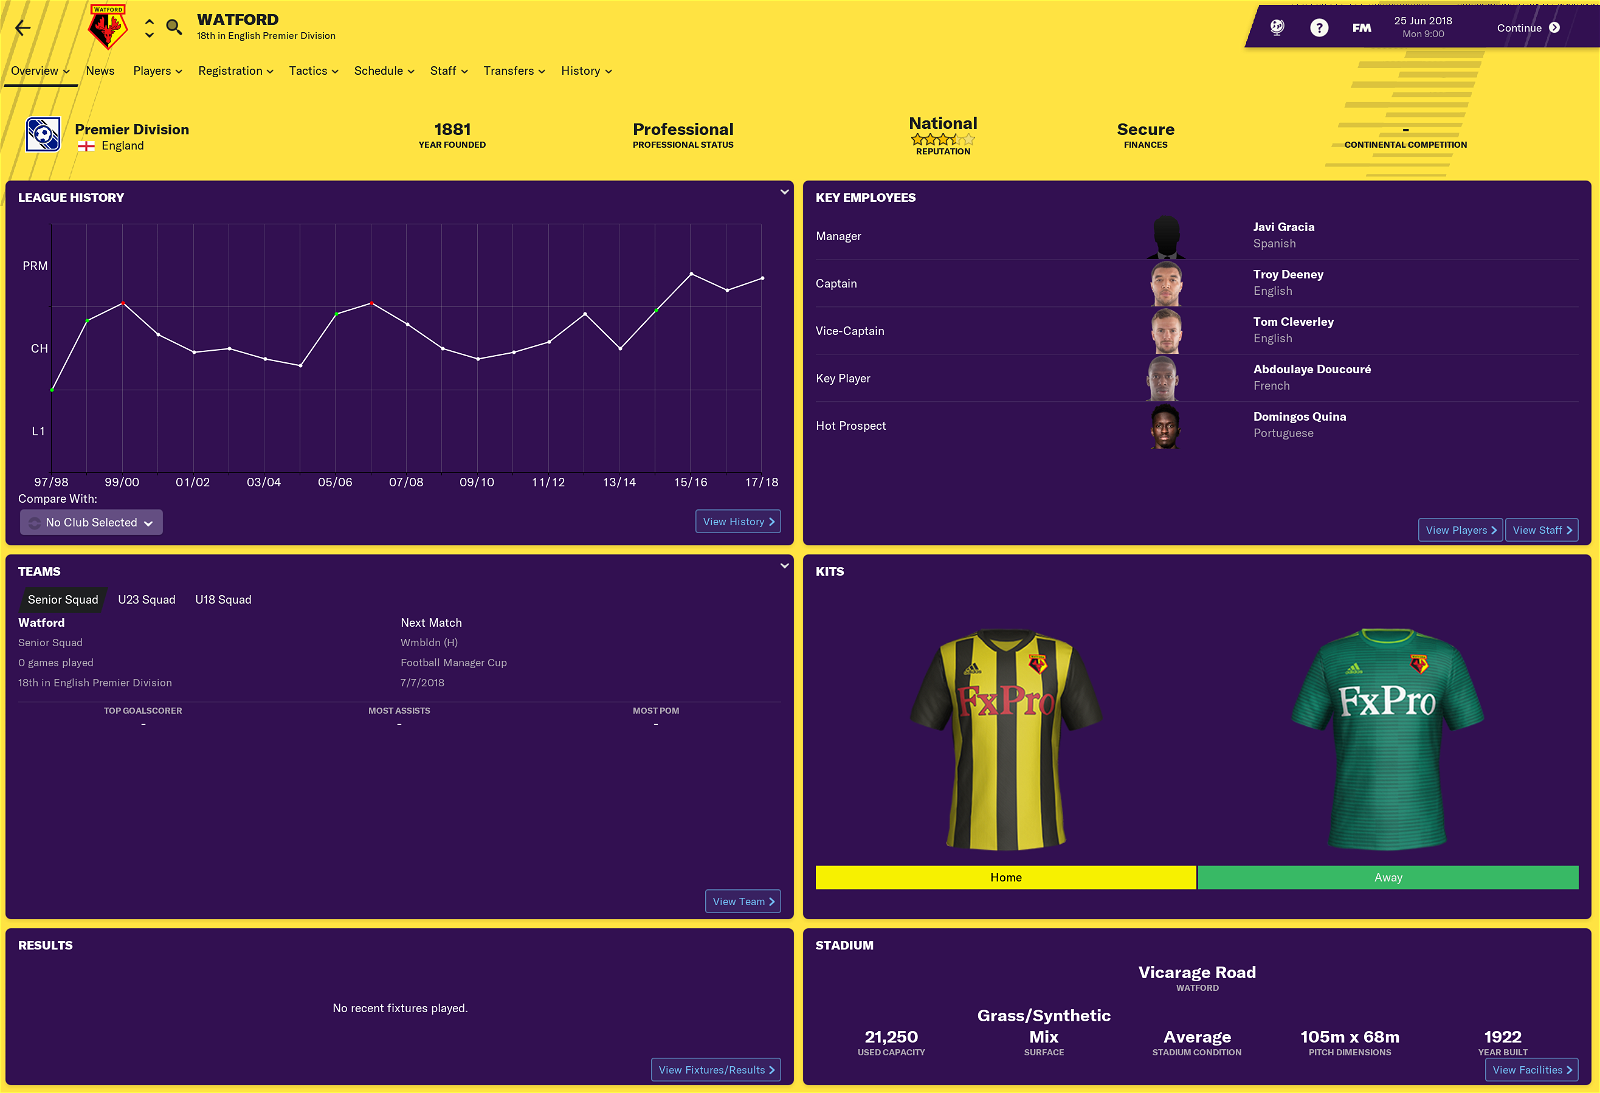 FM19 TEAM GUIDE WATFORD